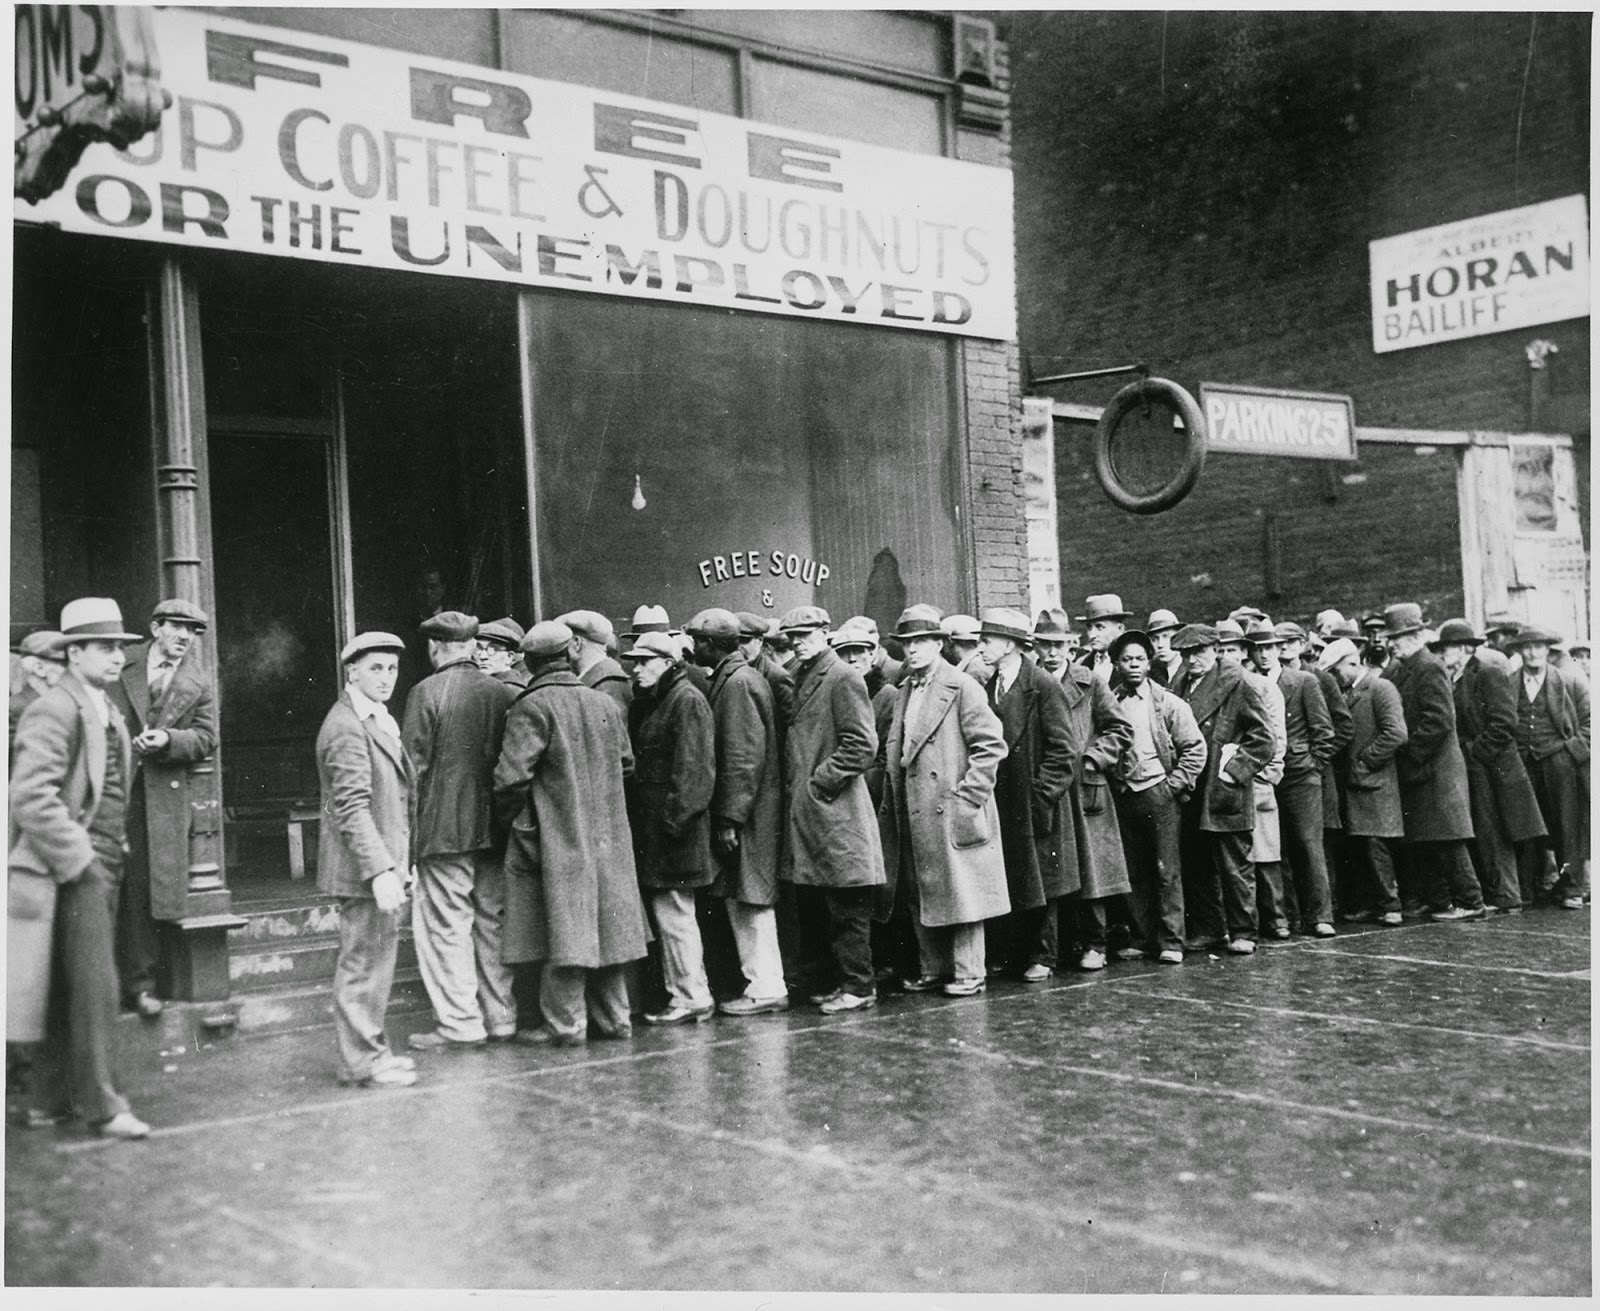 al_capone_s_soup_kitchen_during_the_great_depression_chicago_1931.jpg